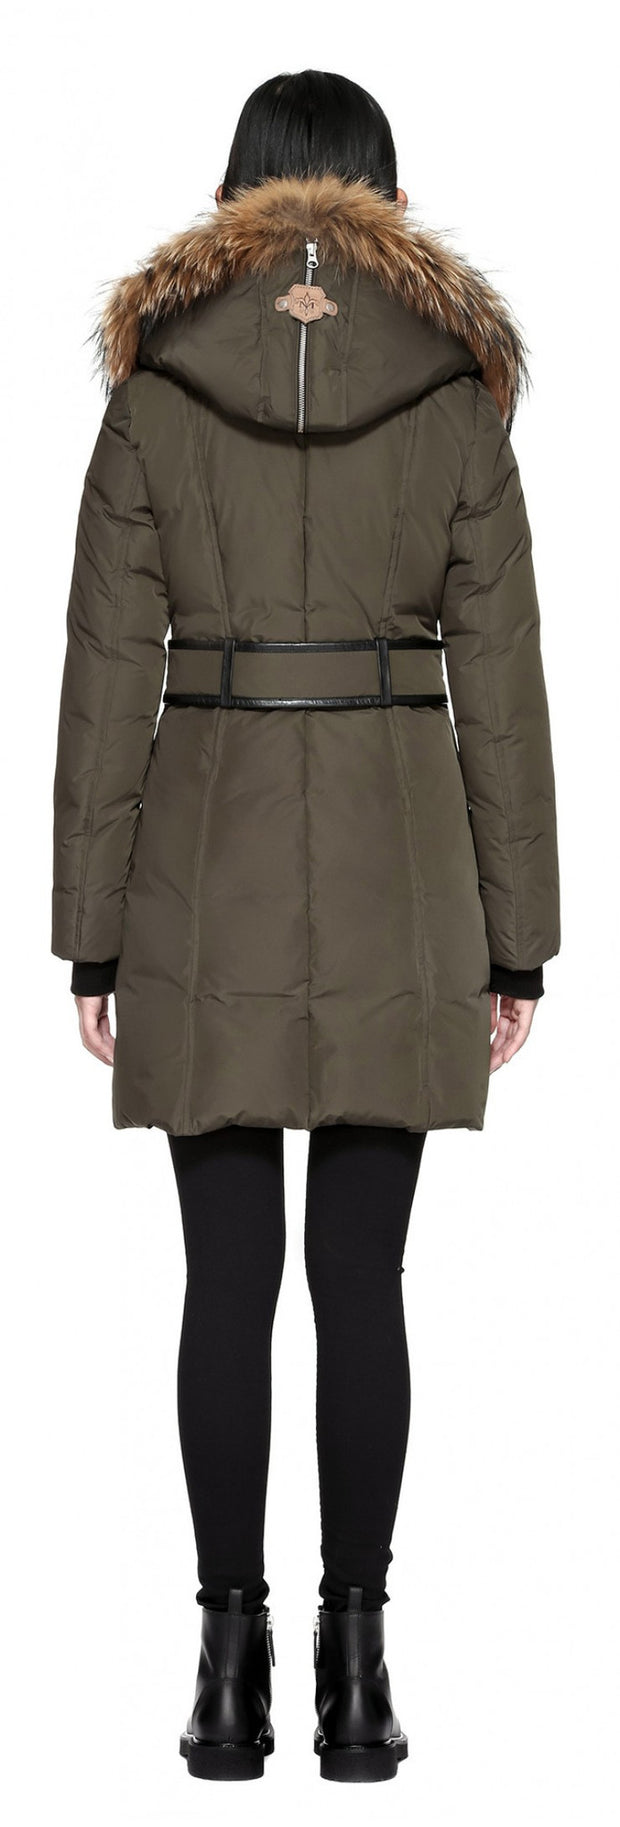 Mackage Mackage- Trish Coat Army at Blond Genius - 3